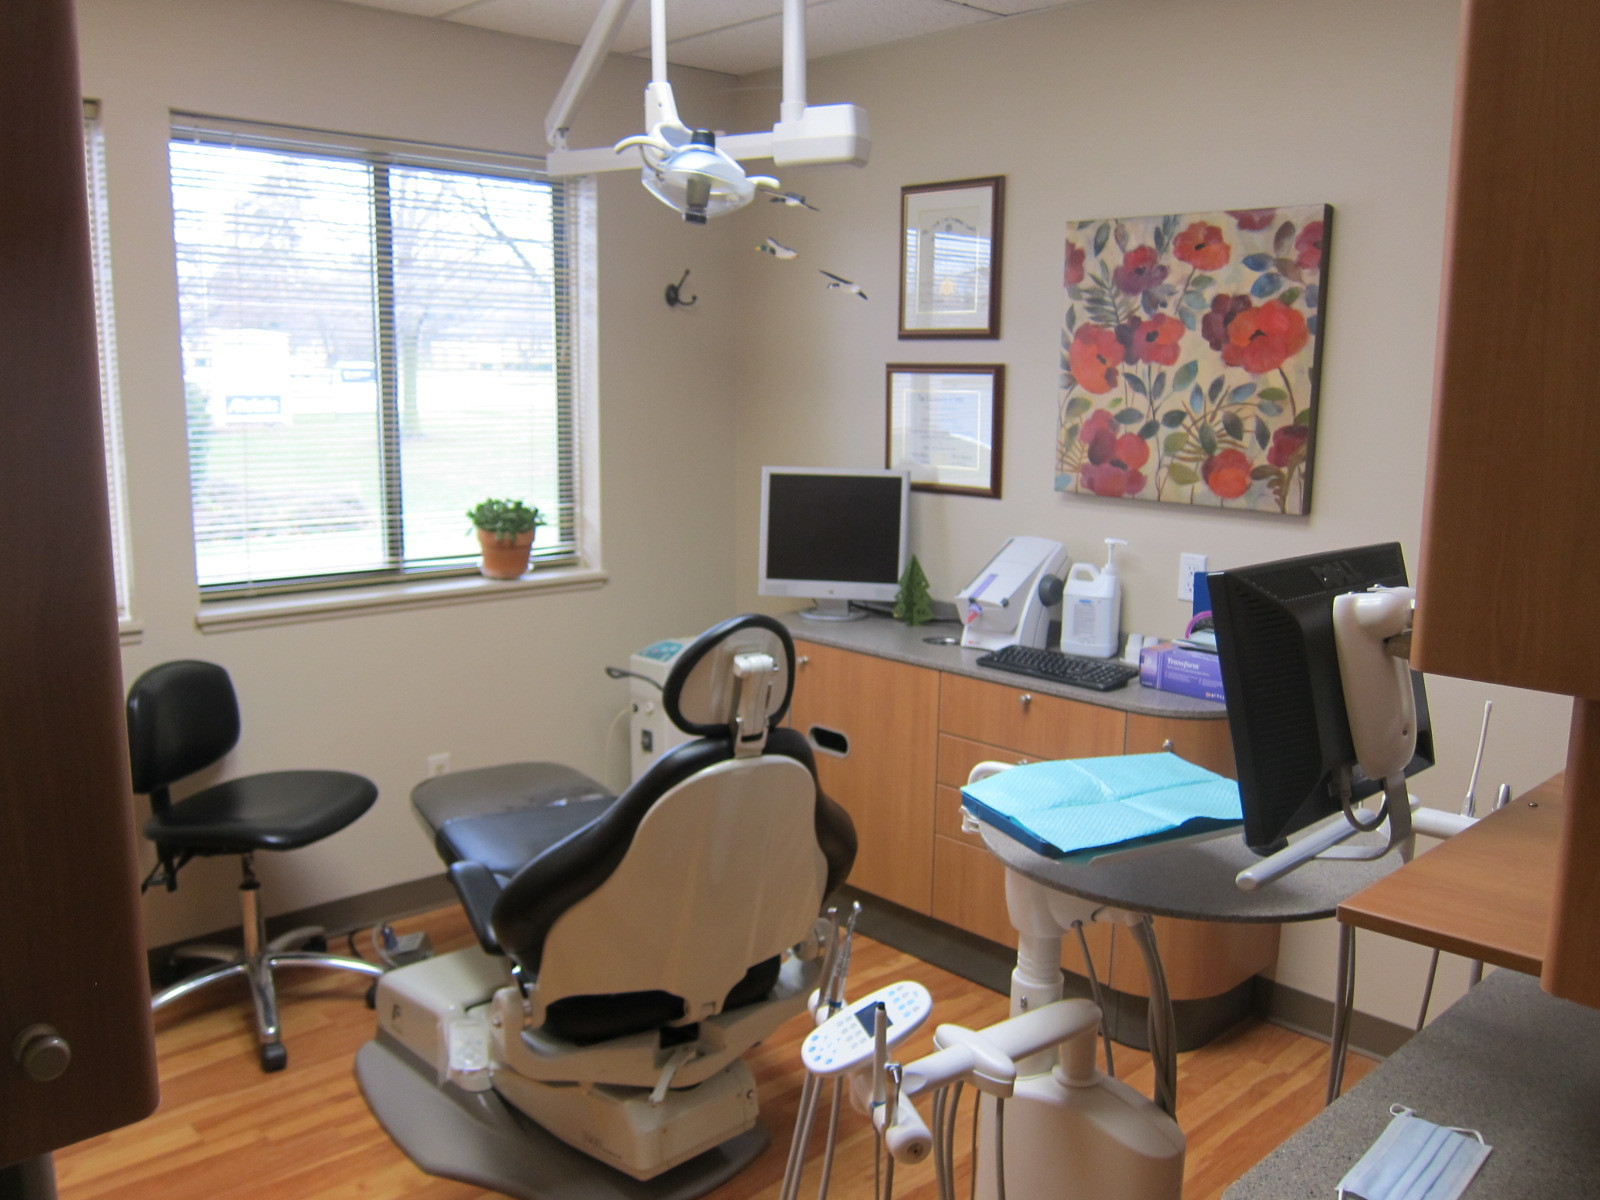 One of the Dental Operatories